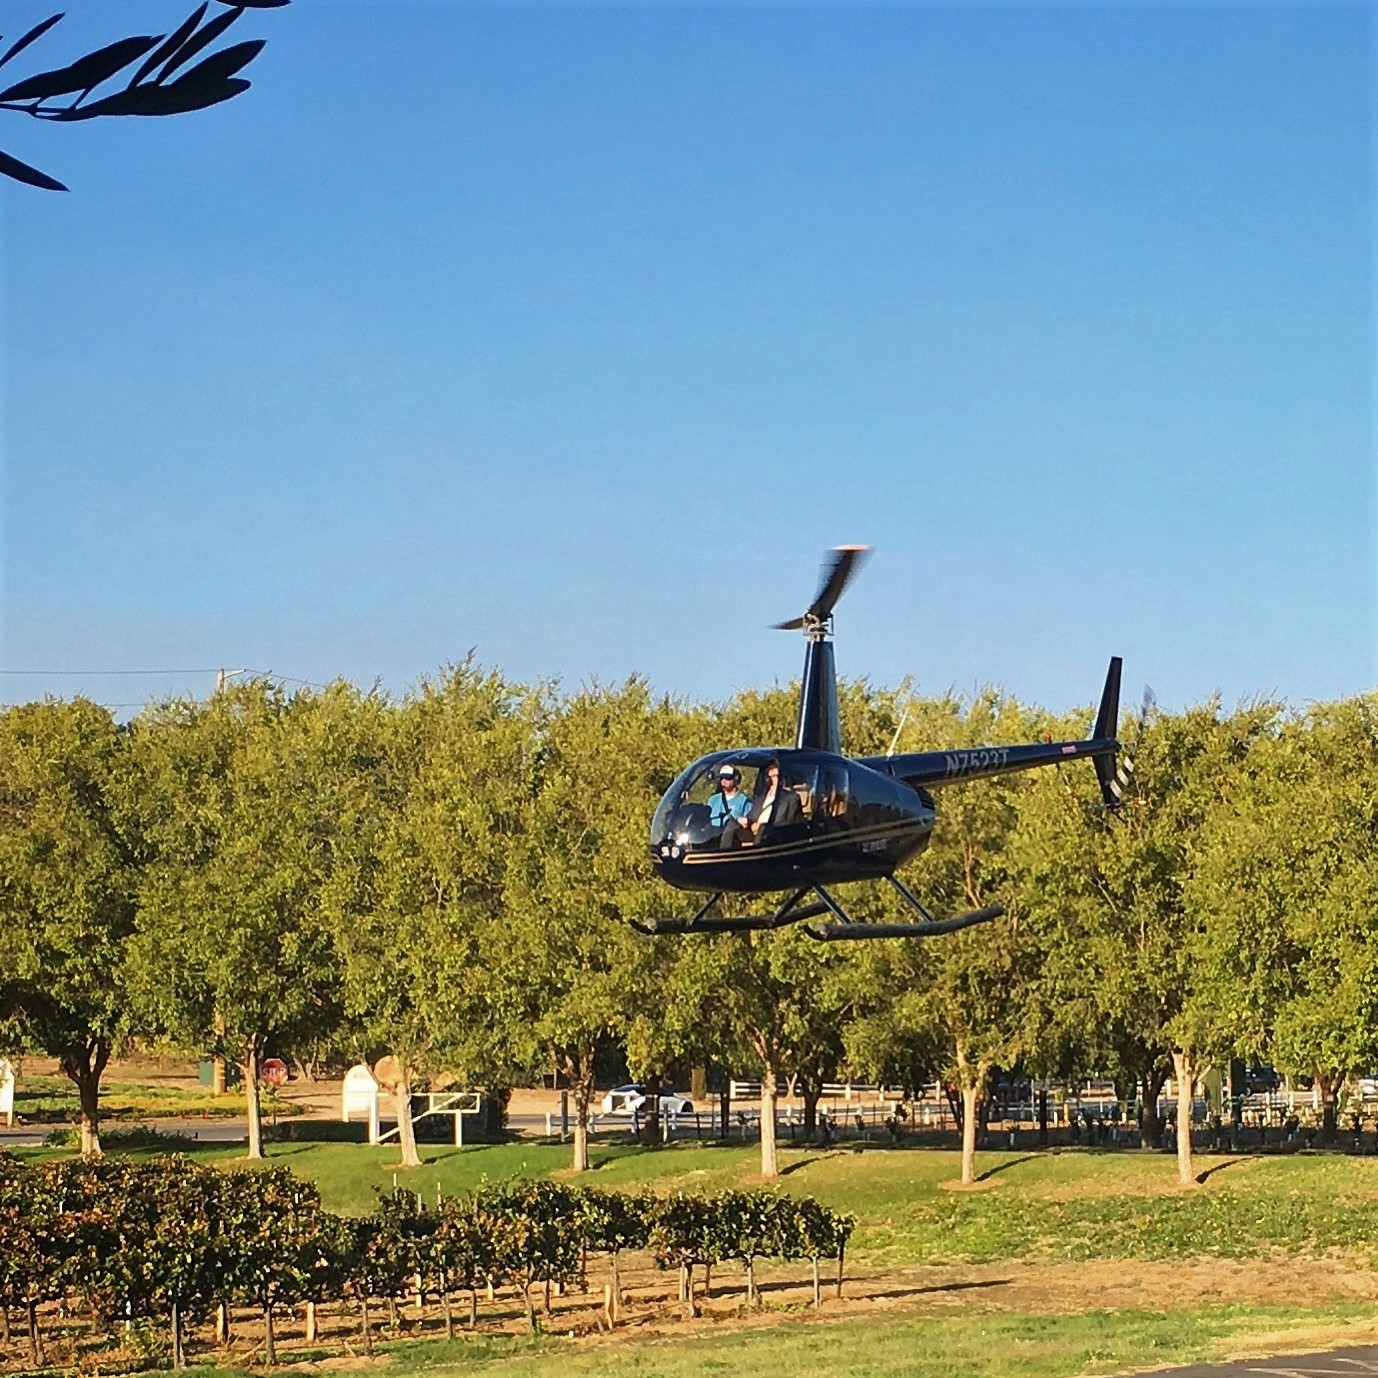 - Land directly at Thornton Winery VIP style!